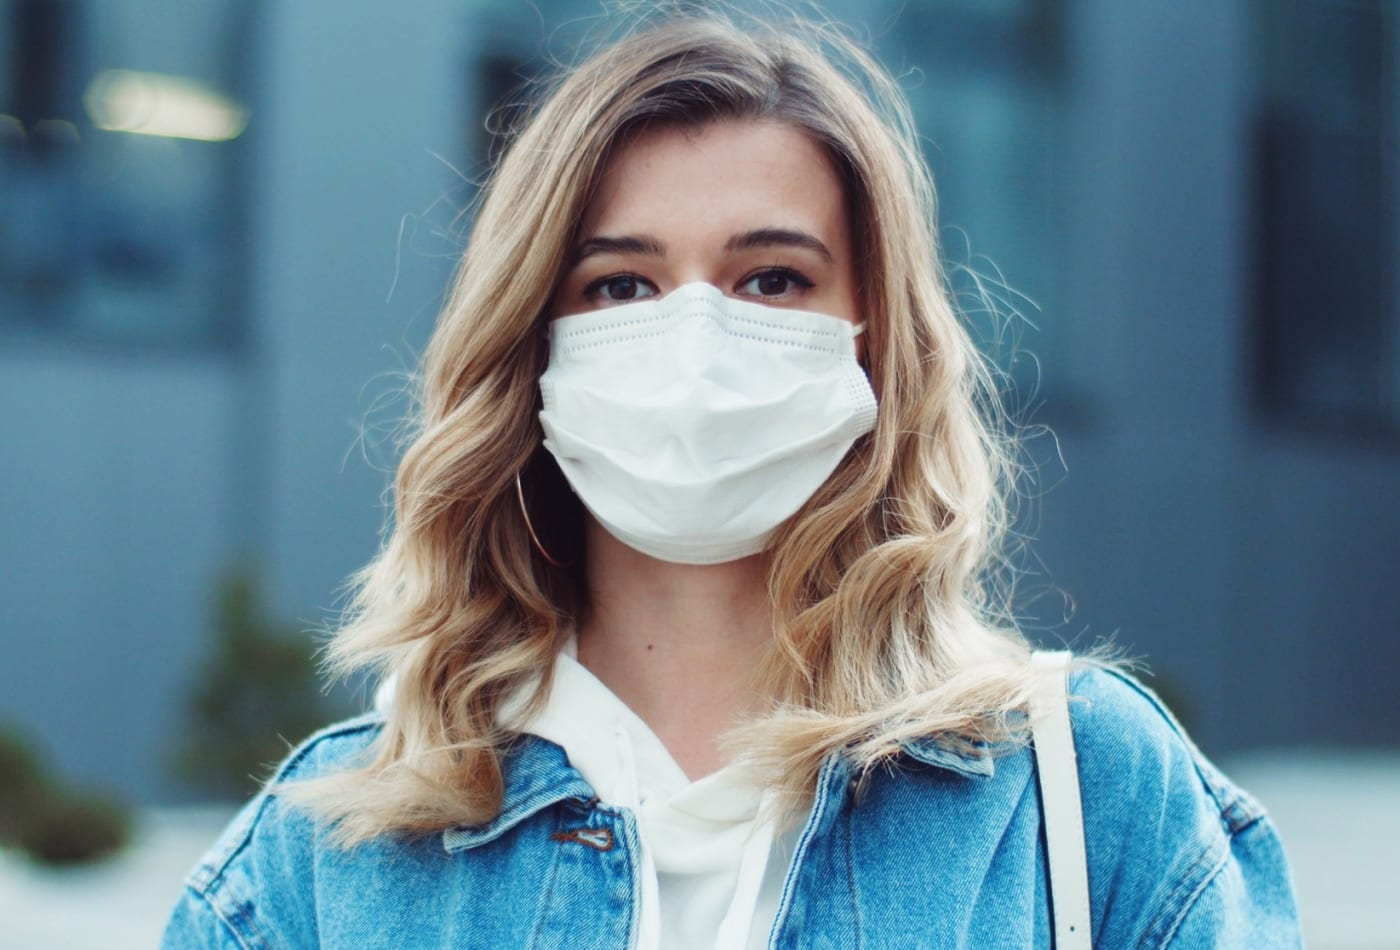 106701608-1600102224002-woman-wearing-mask-and-looking-to-camera-at-city-health-and-safety-n1h1-coronavirus-virus-protection_t20_mLwp7v